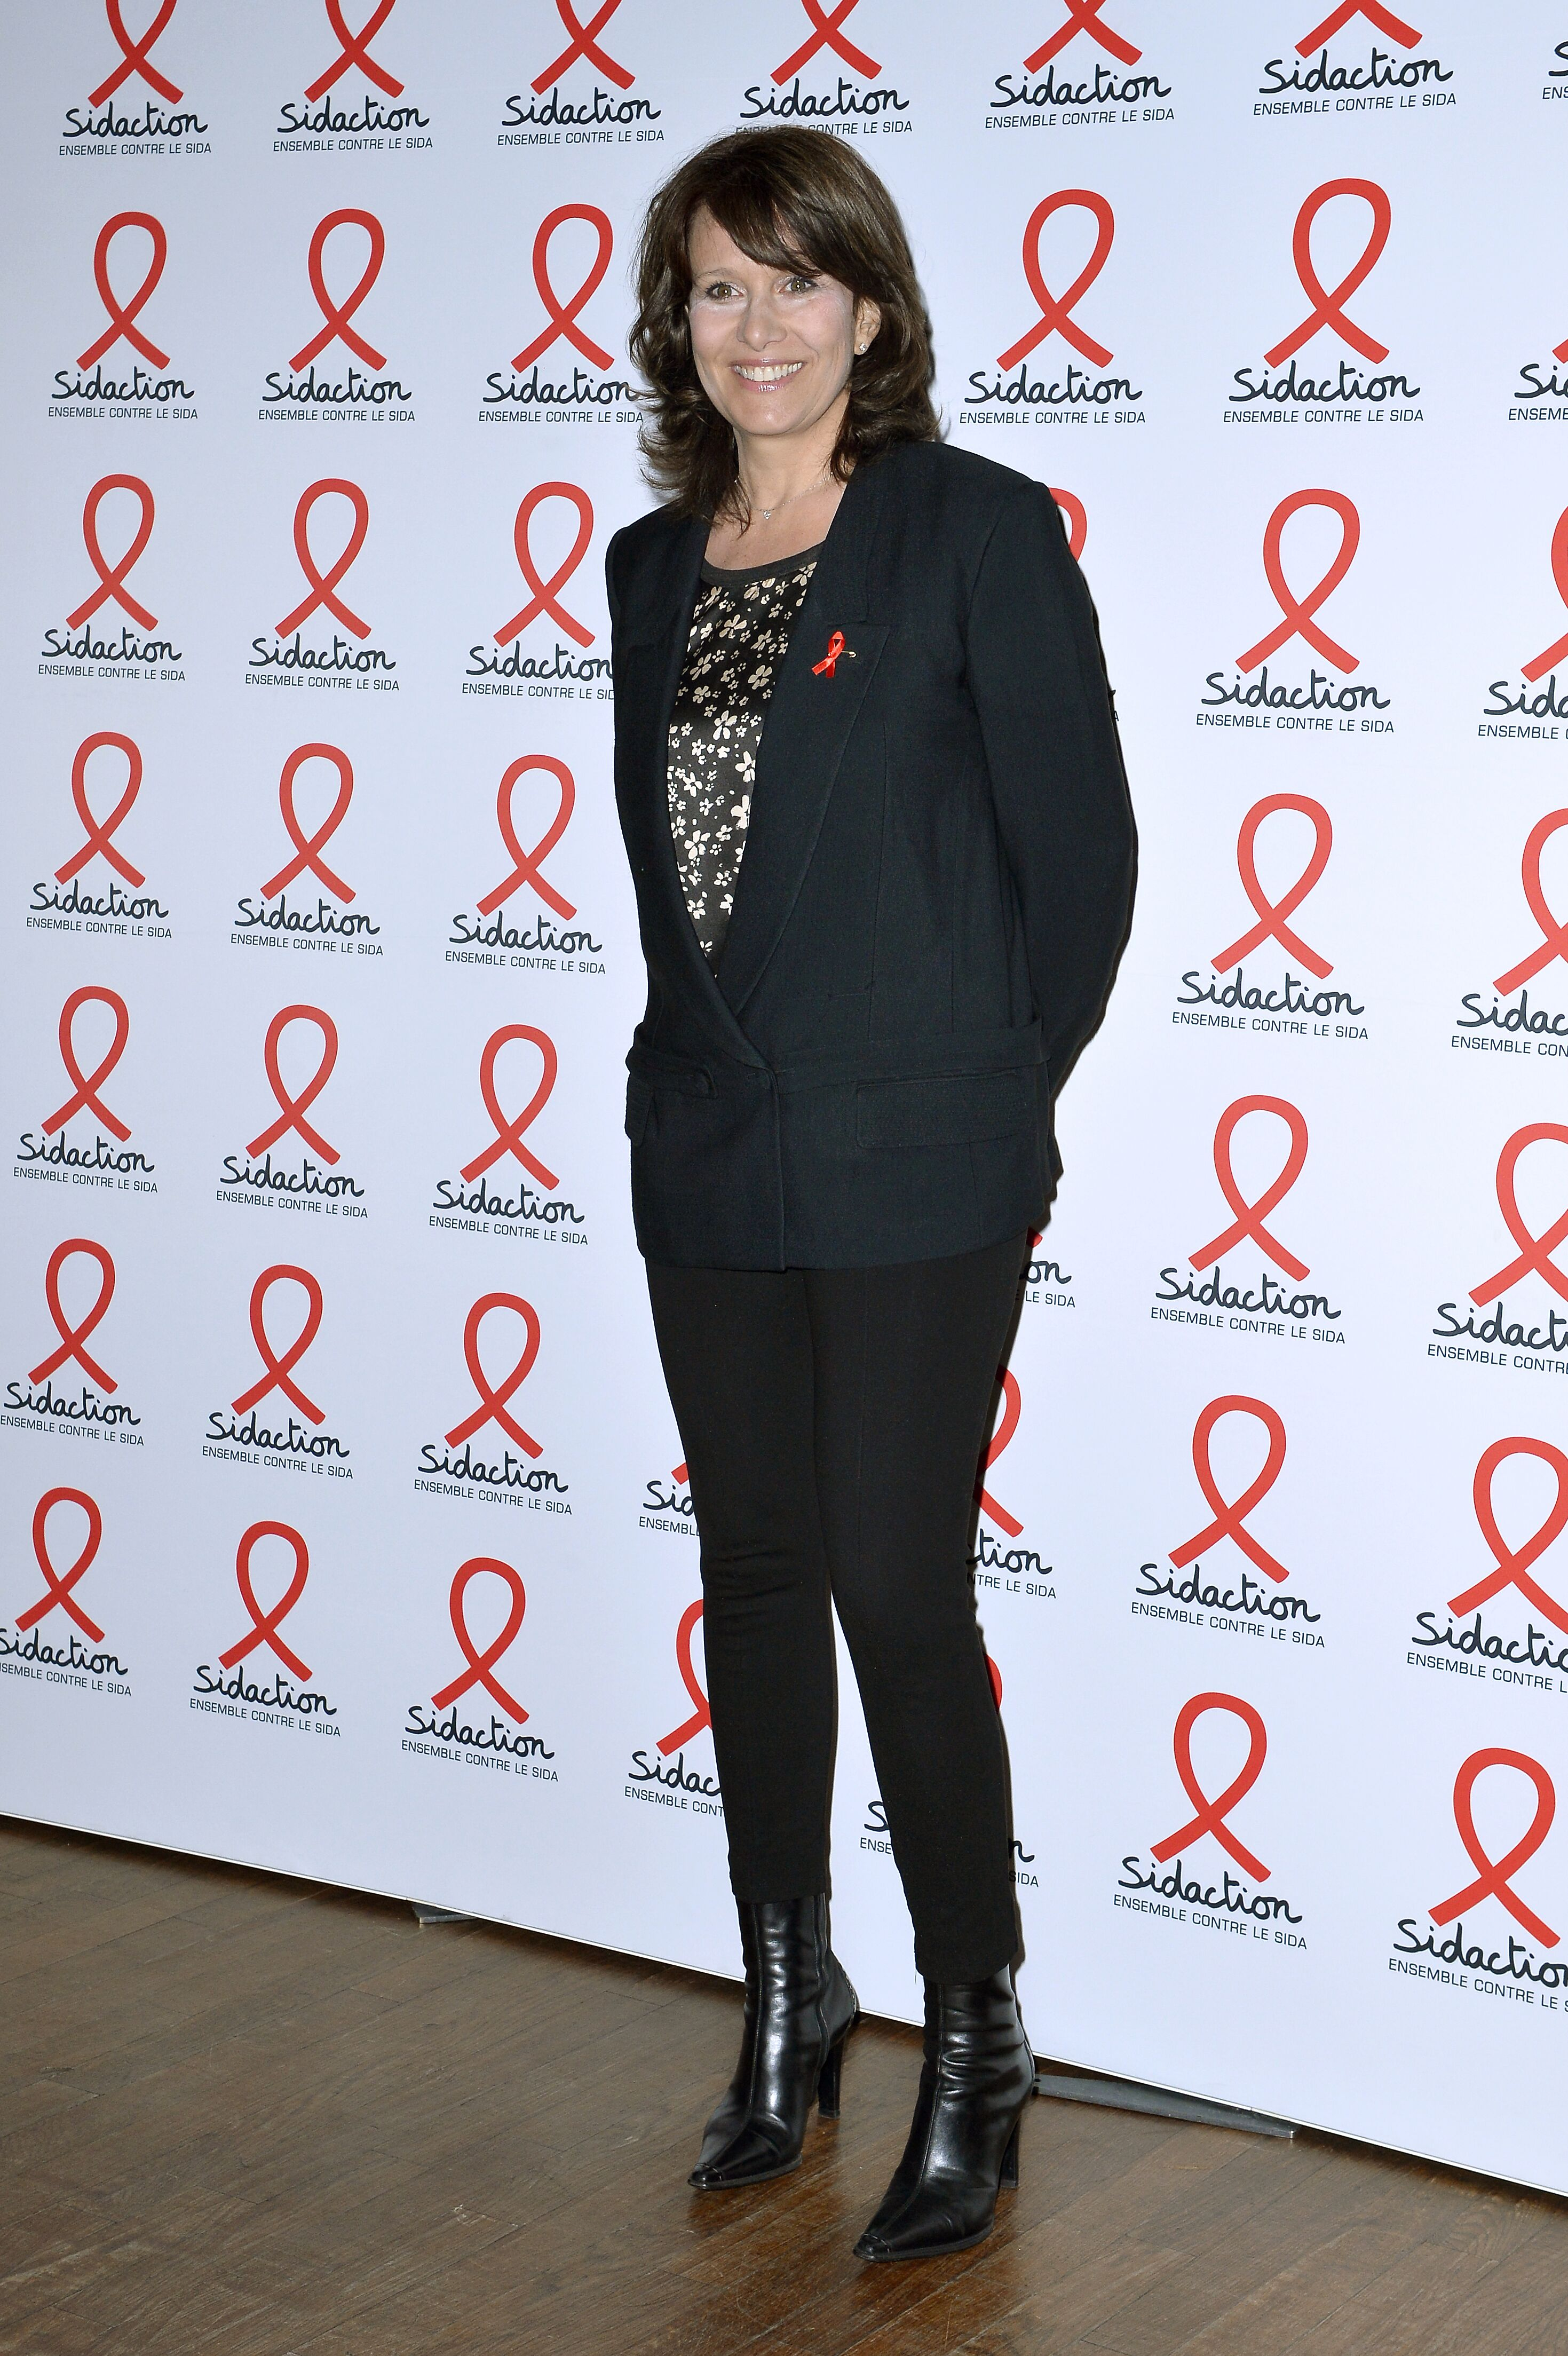 Carole Rousseau assiste au photocall de Sidaction 2019 à la Salle Wagram le 18 mars 2019 à Paris, France. | Photo : Getty Images